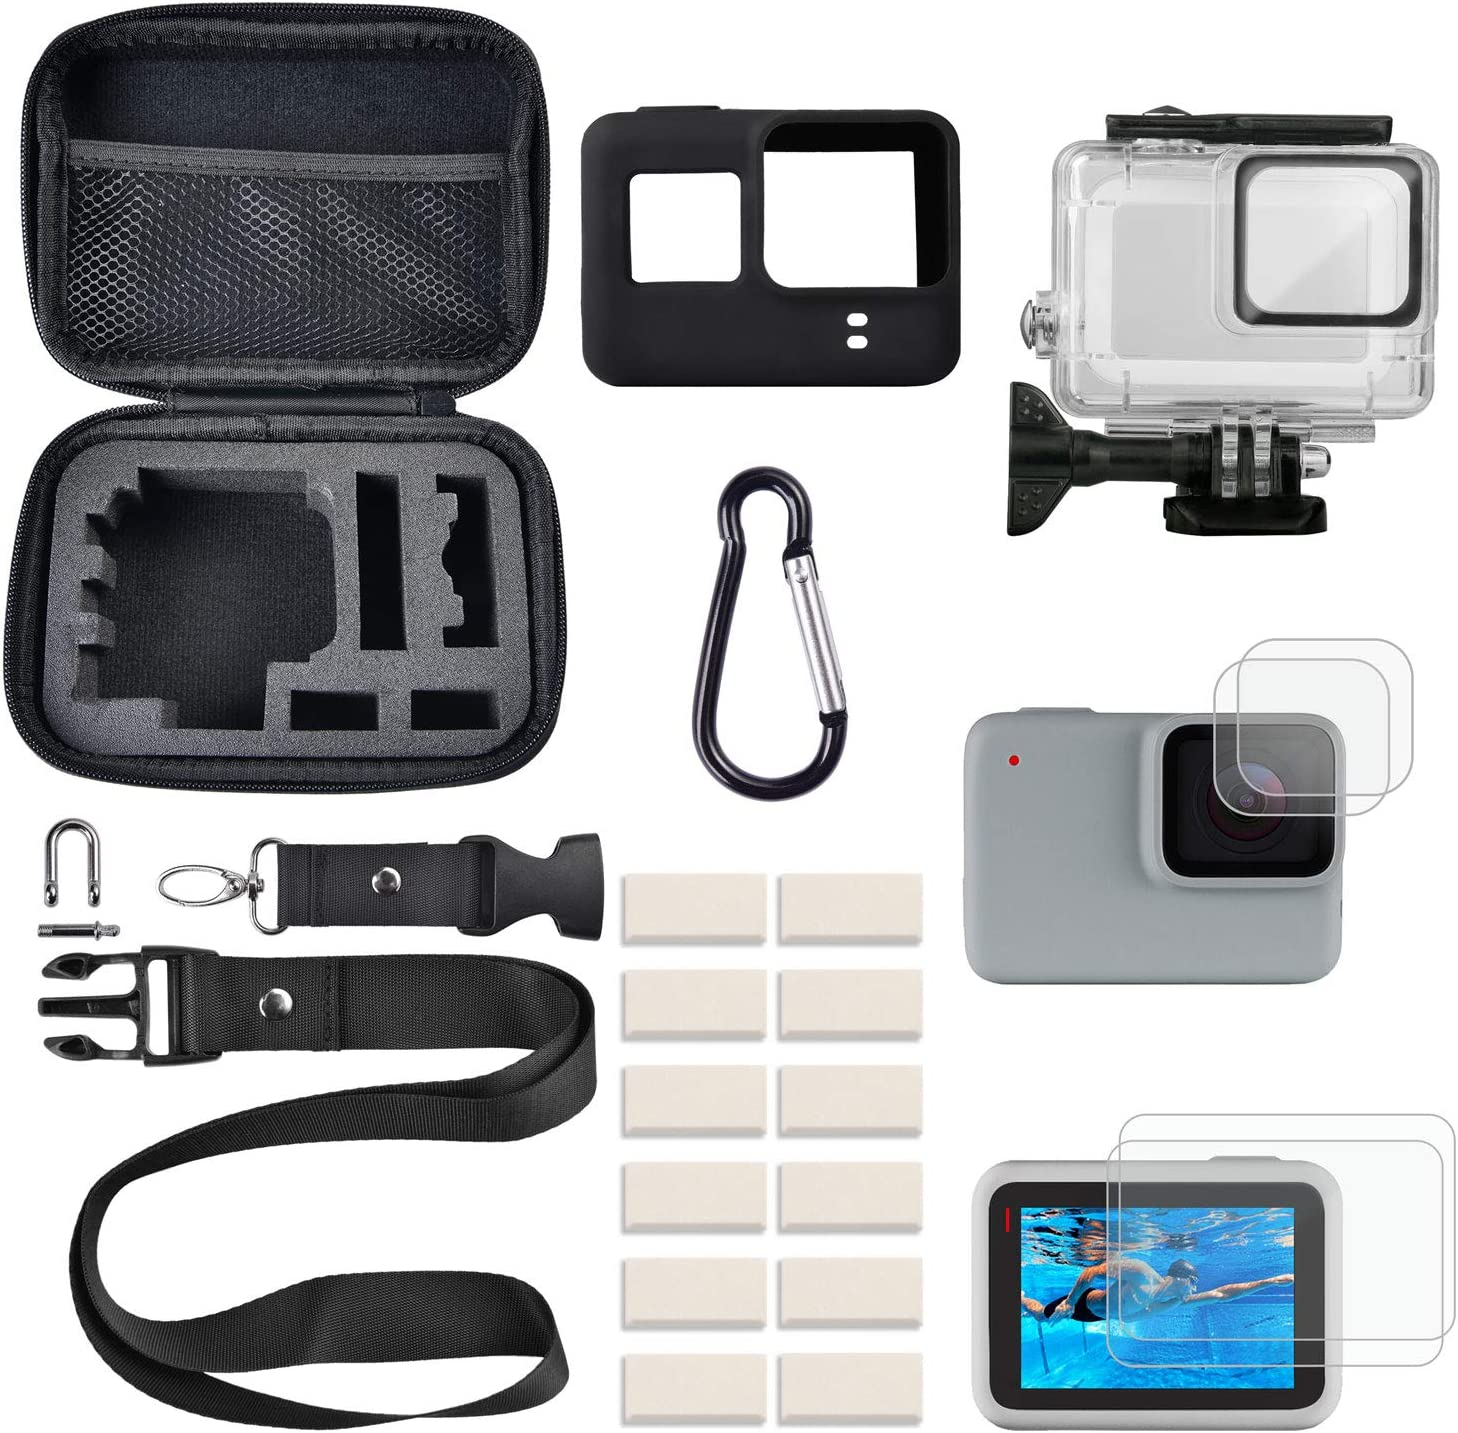 FINEST+ Accessories Kit for GoPro Hero 7 White/Silver Waterproof Housing+Tempered Glass Screen Protector+Carrying Case+Sleeve Case+Carabiner+Anti-Fog Inserts for Go Pro Hero 7White/Silver